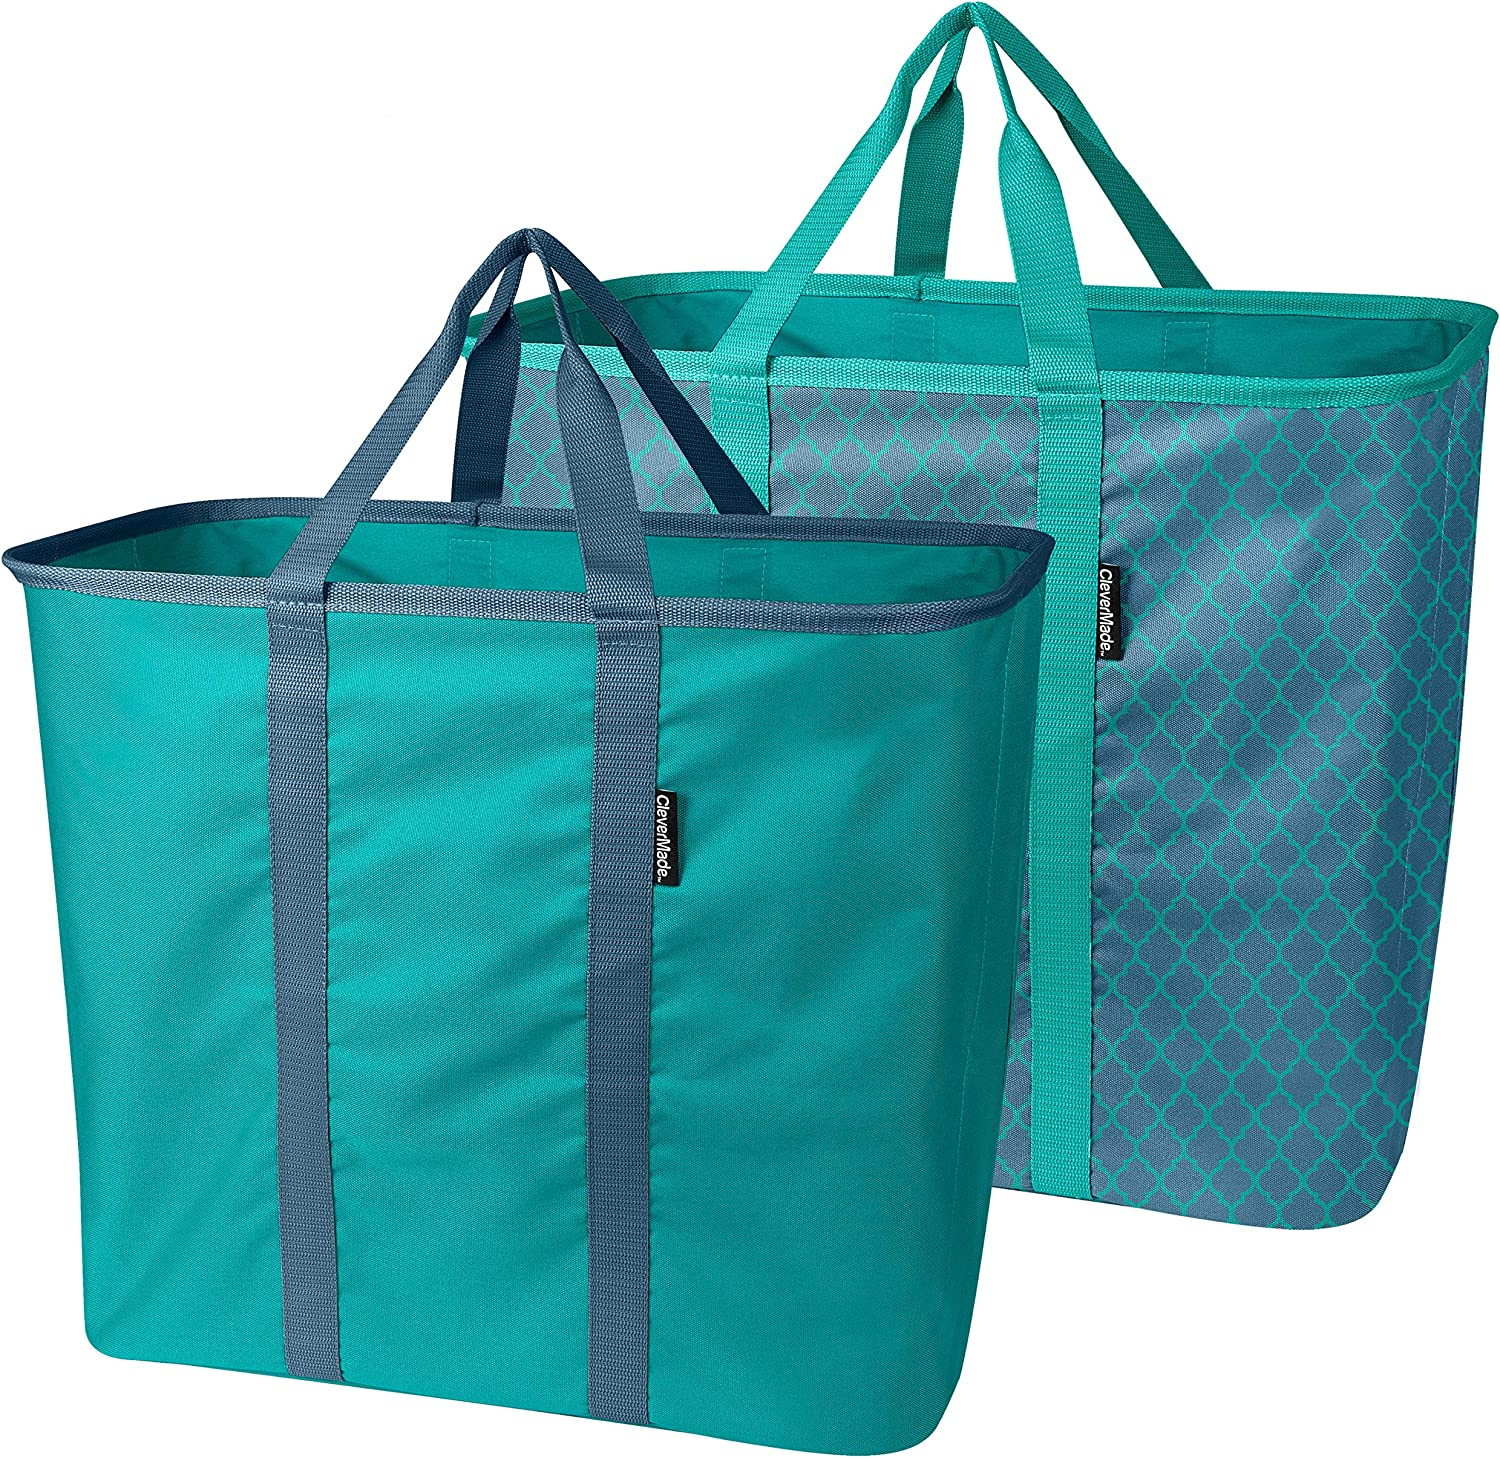 CleverMade Laundry Basket, Extra Large, One Size, Denim/Teal